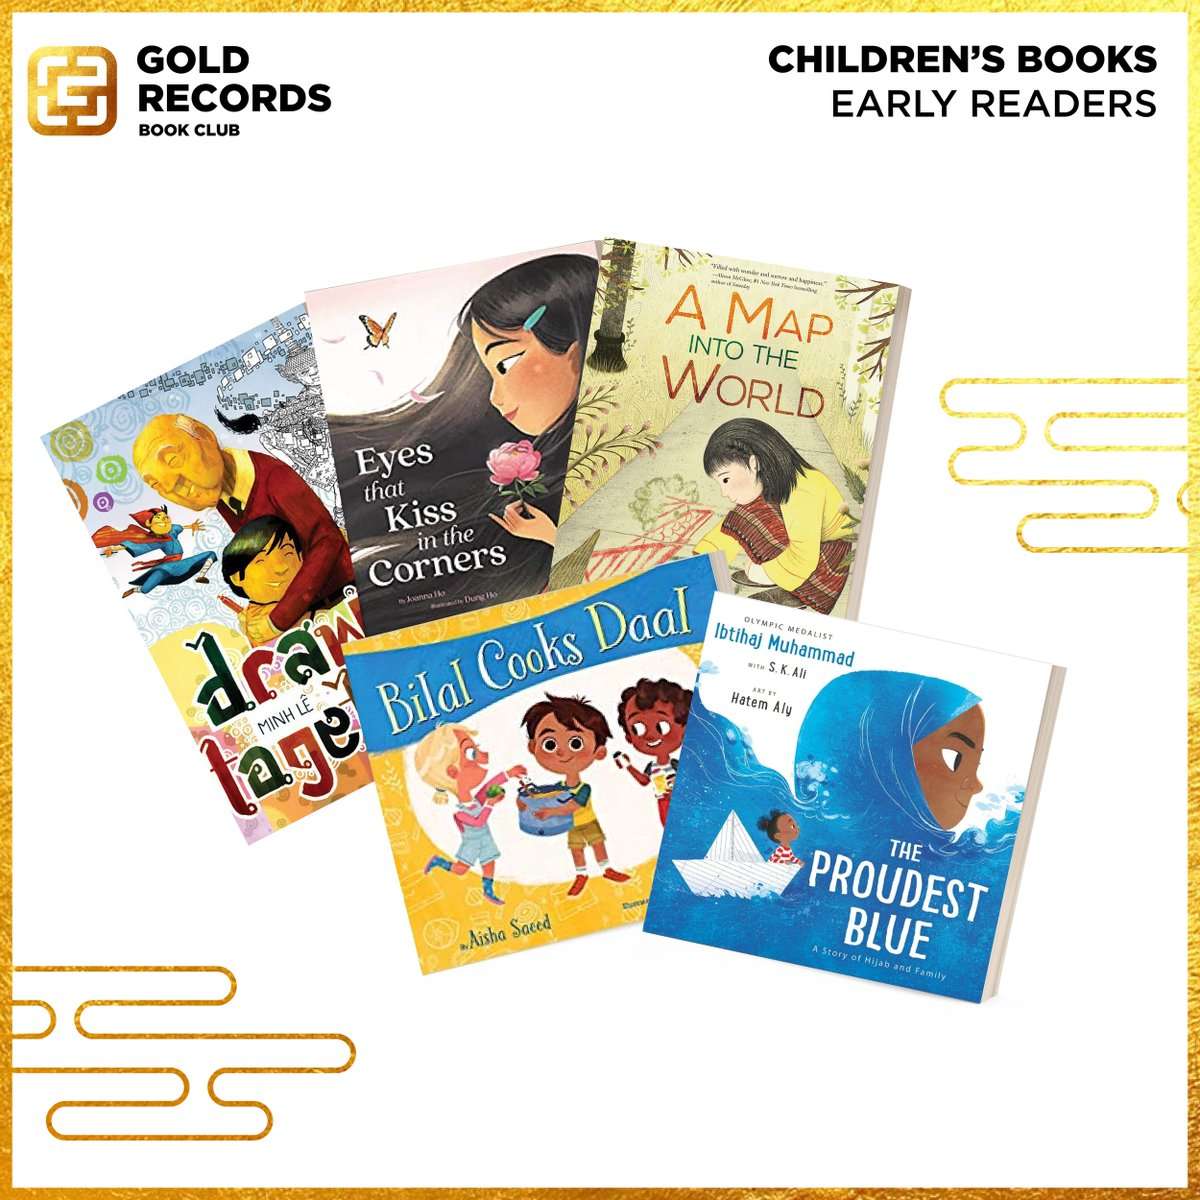 Announcing our EARLY READERS #GoldHouseBookClub list for Summer & Fall 2021!  Featuring @bottomshelfbks, @aishacs, @JoannaHoWrites, @IbtihajMuhammad, and @kaokaliayang Join our Facebook Group (https://t.co/FyuapnGva6) & stay tuned for programming! https://t.co/dgNN06ylLm